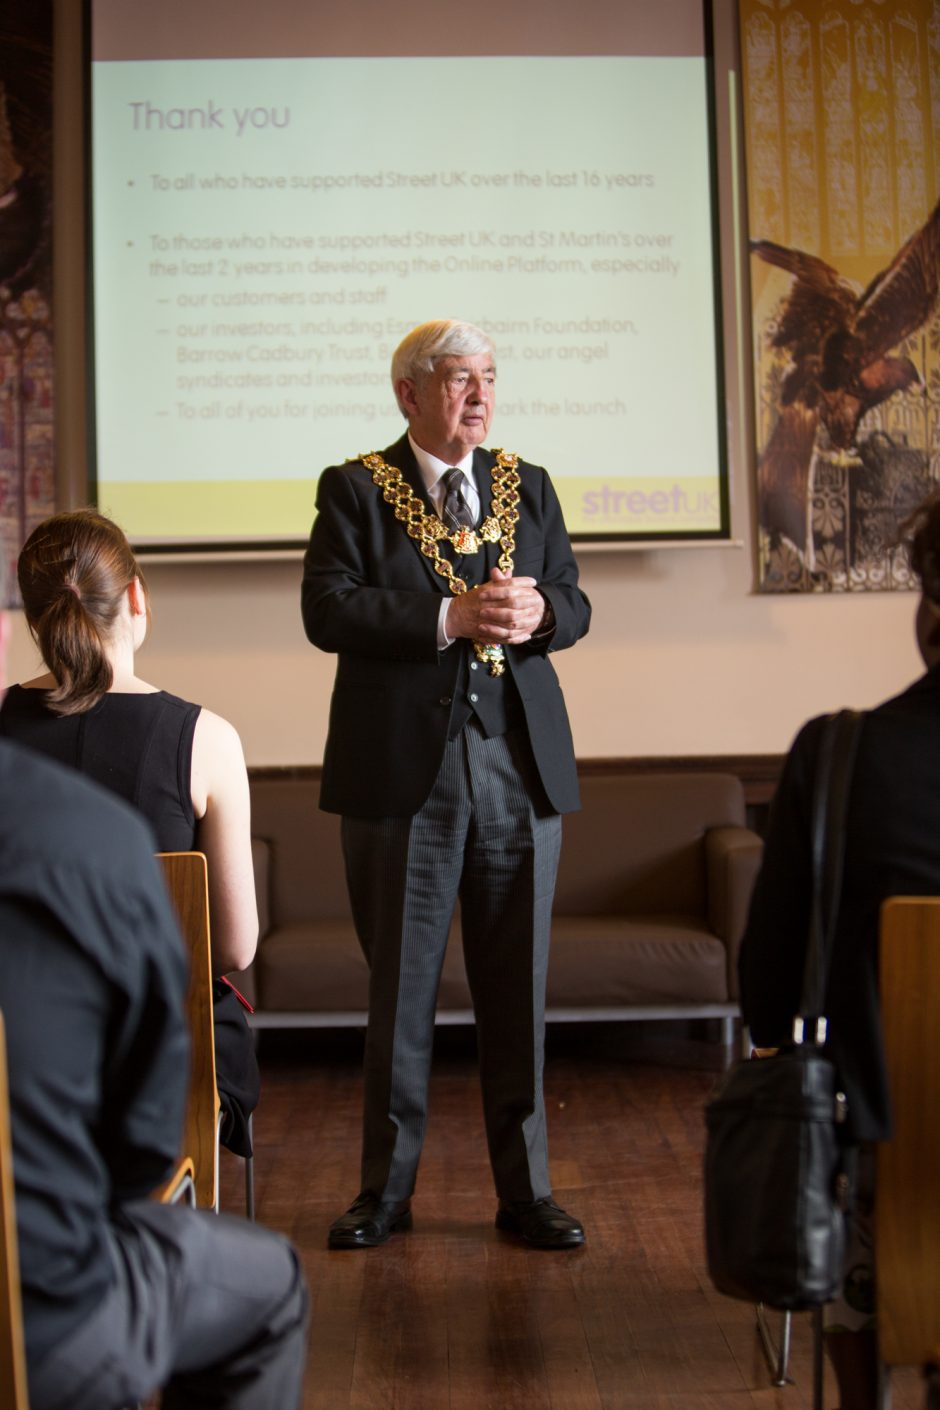 Lord Mayor of Brimingham Cllr Ray Hassal